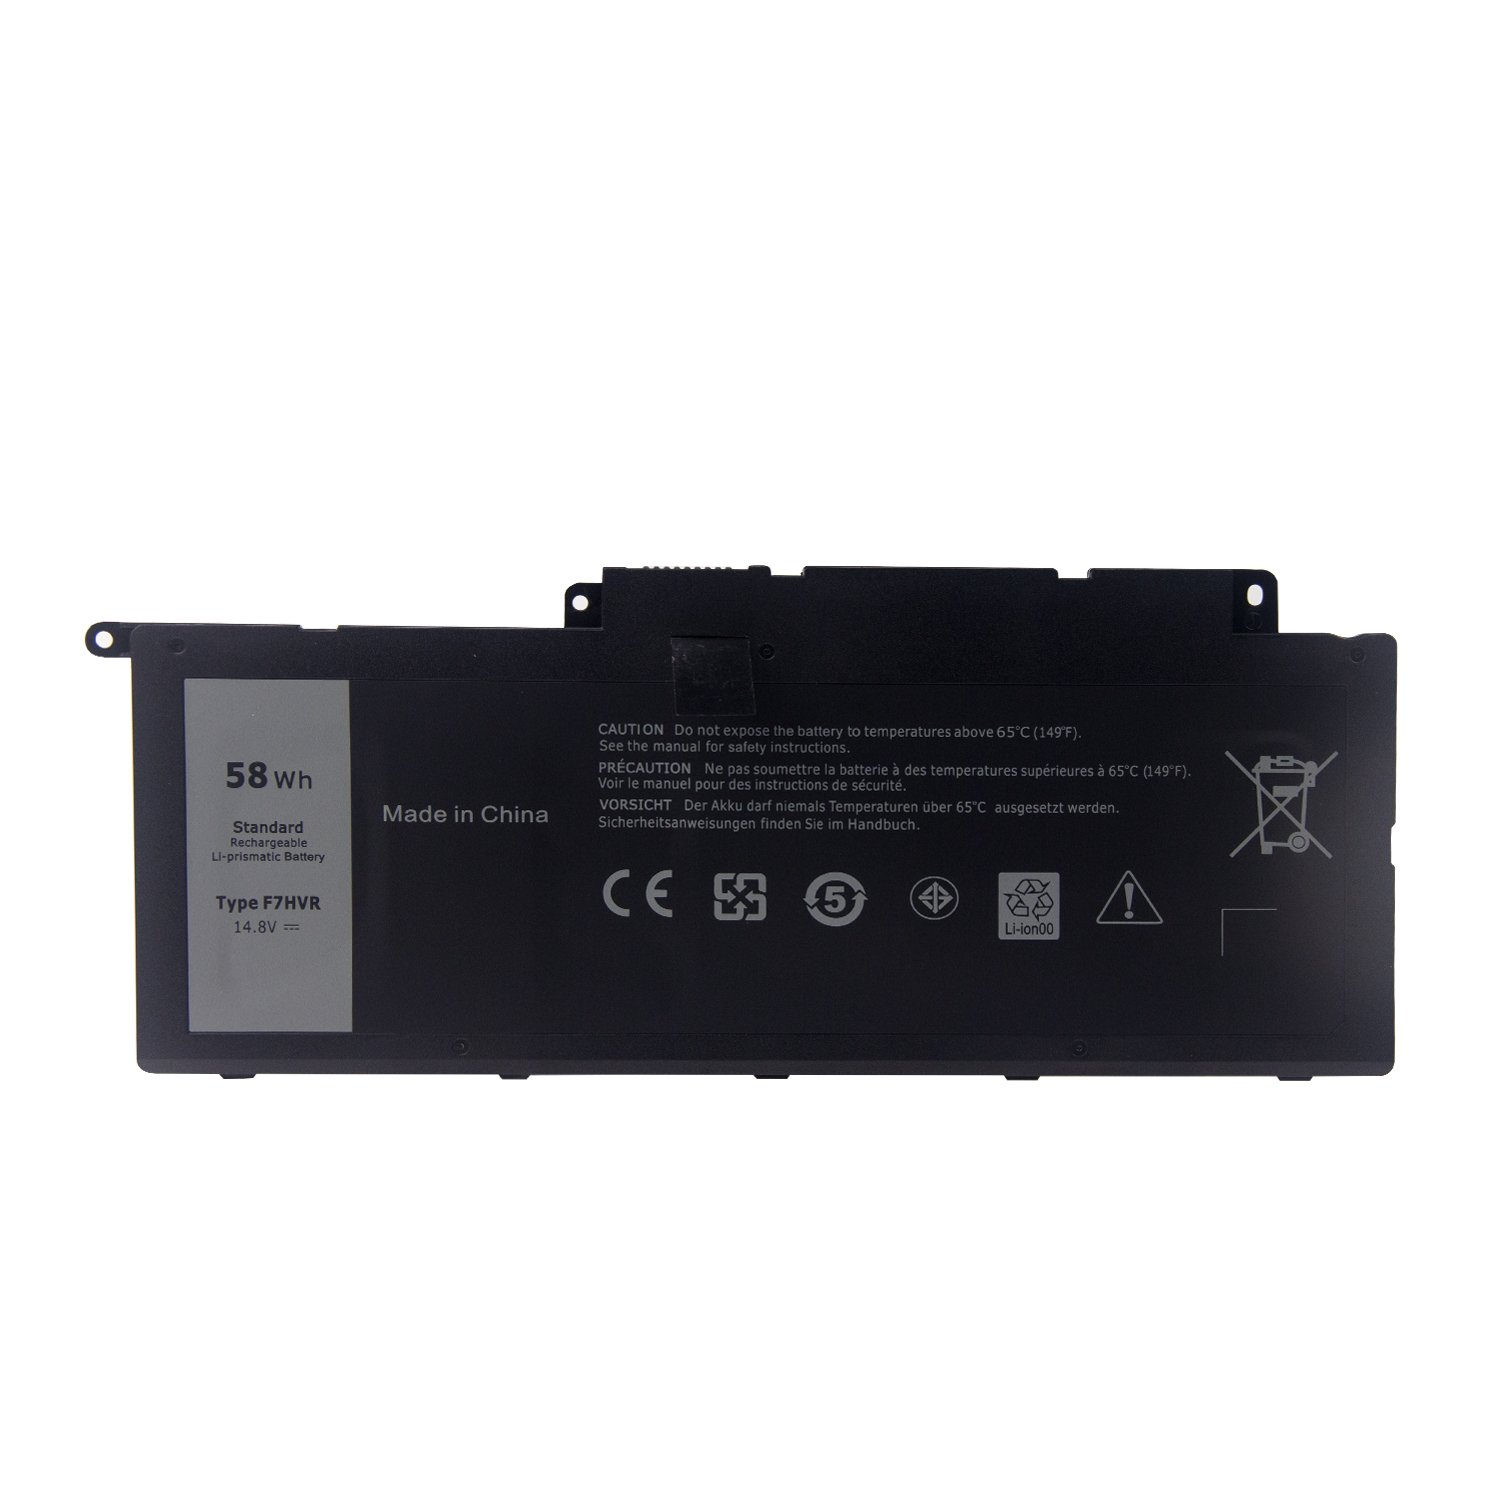 Madehao F7HVR (14.8V 58Wh) Replacement Laptop Battery for Dell Inspiron 17 7737 15 7537 Series G4YJM 062VNH T2T3J